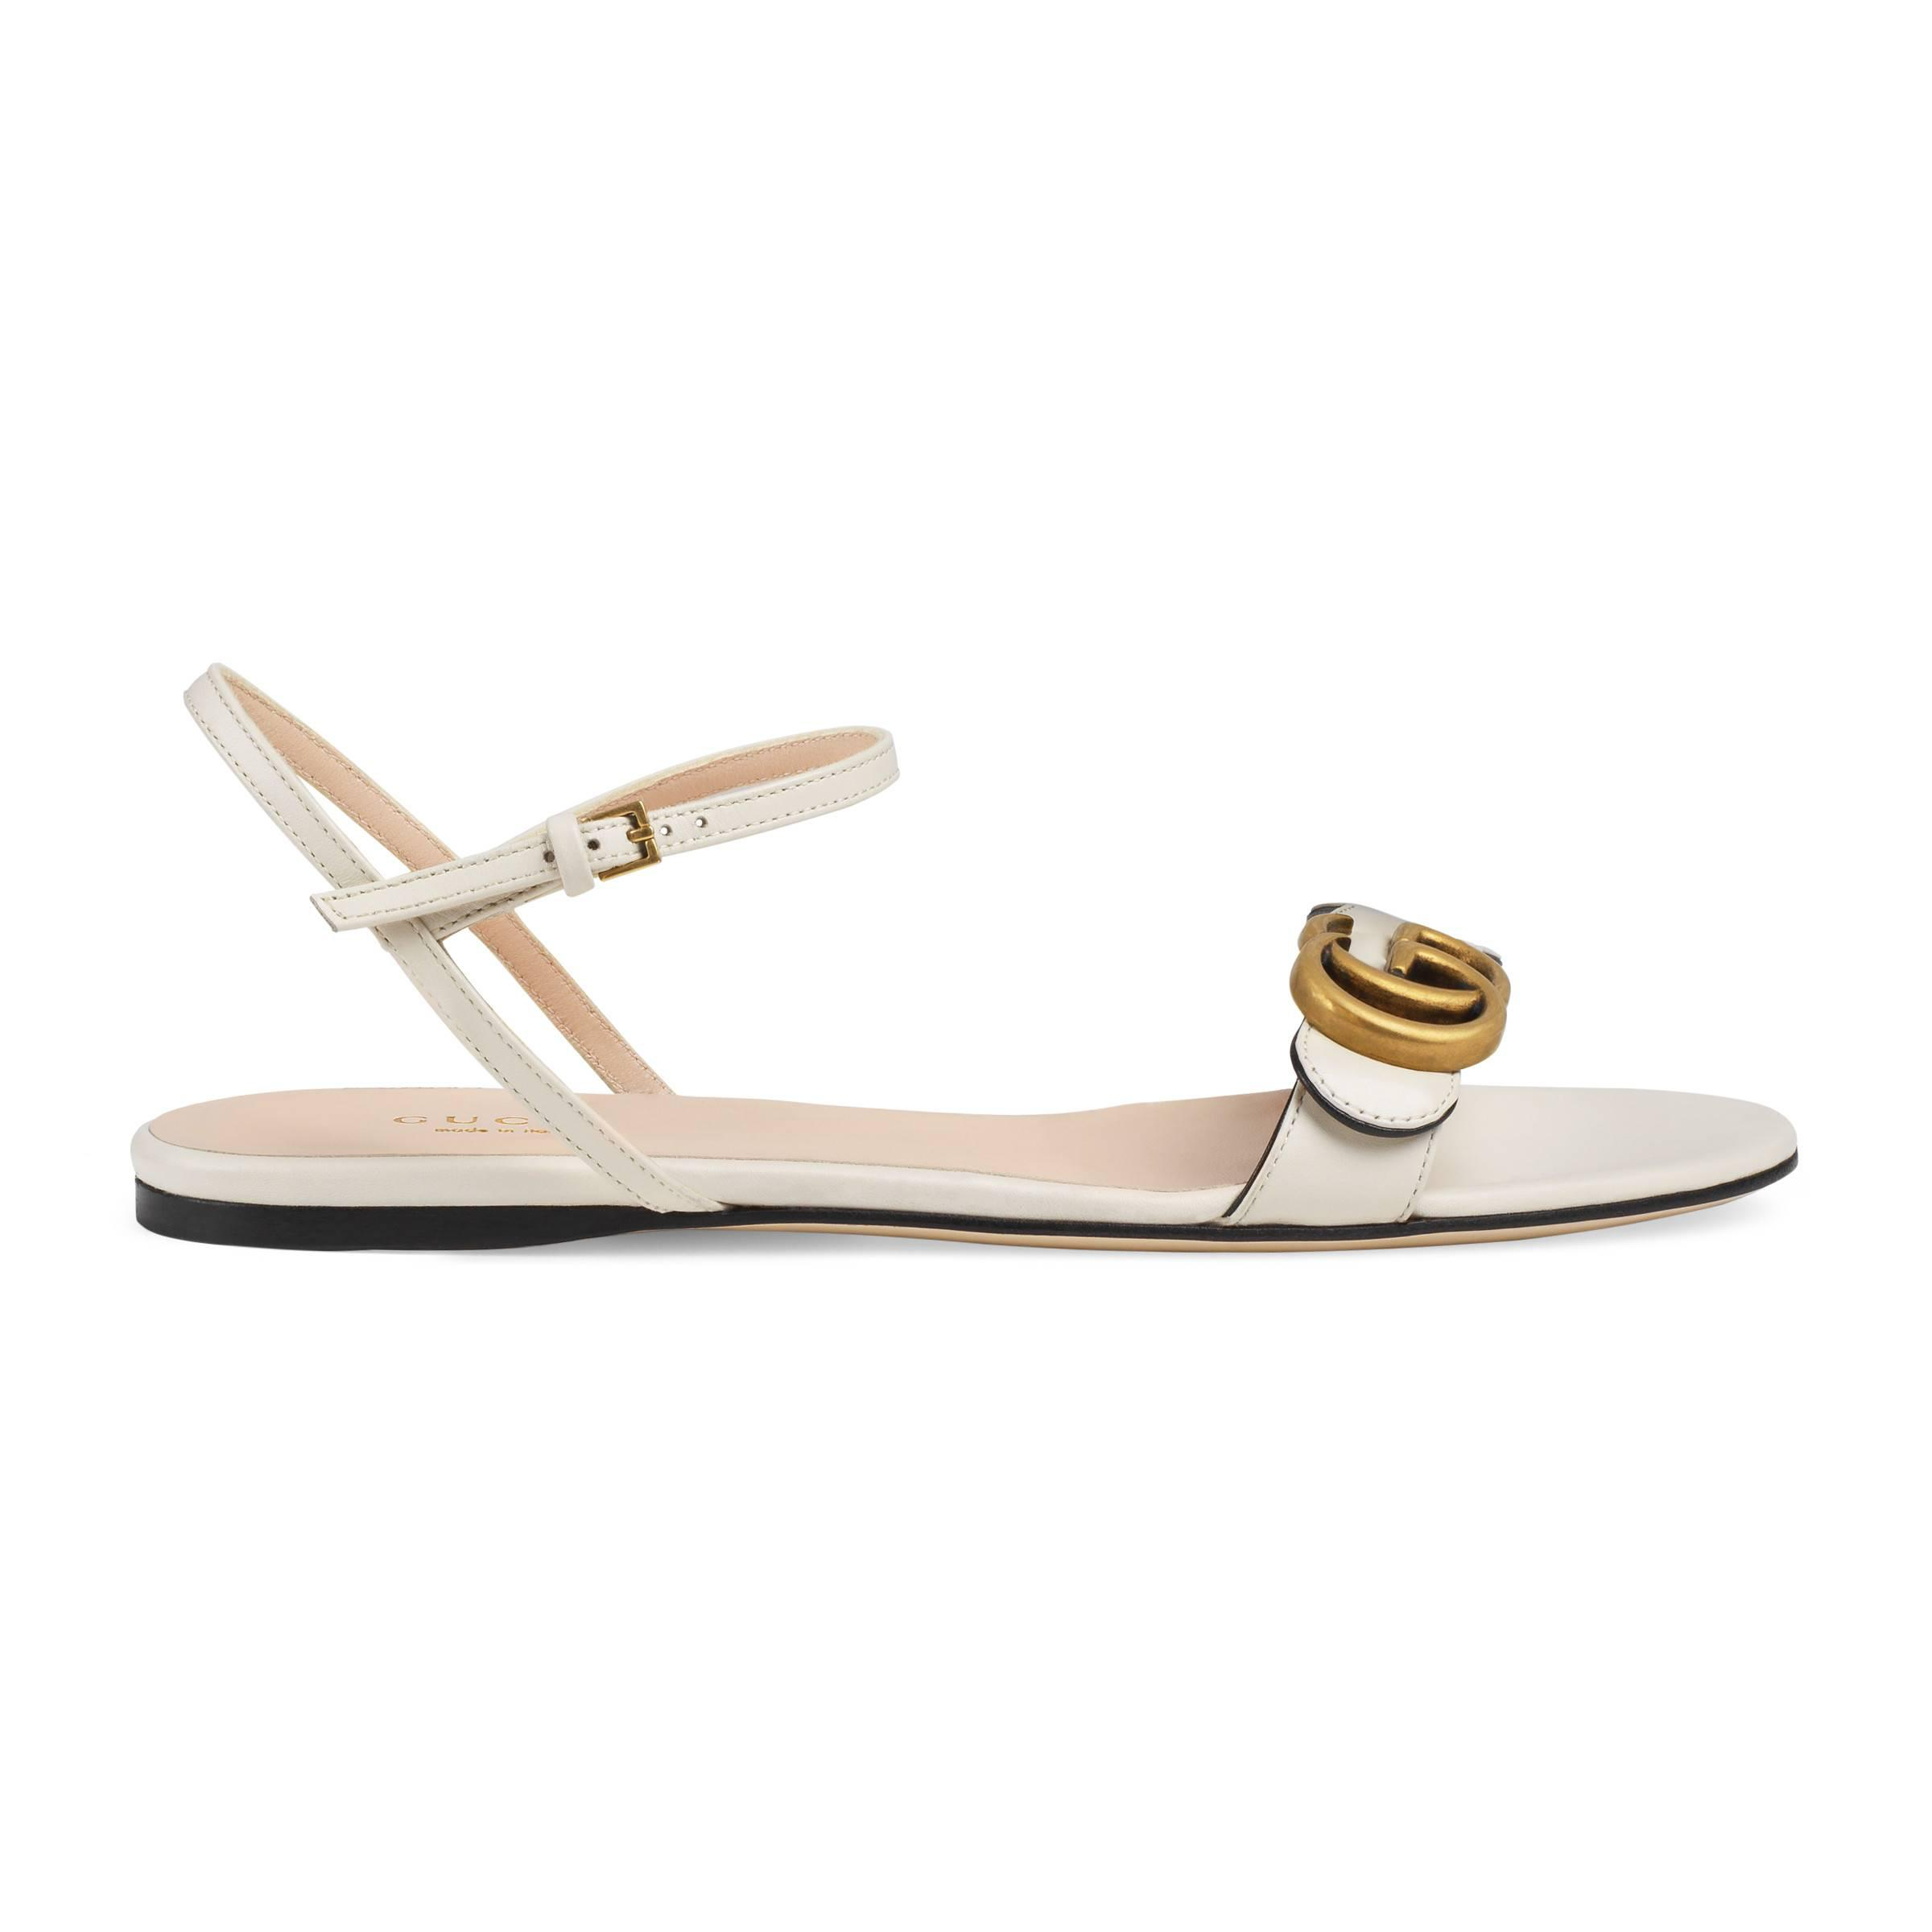 4387f3c5294334 Gucci Leather Sandal With Double G in White - Lyst